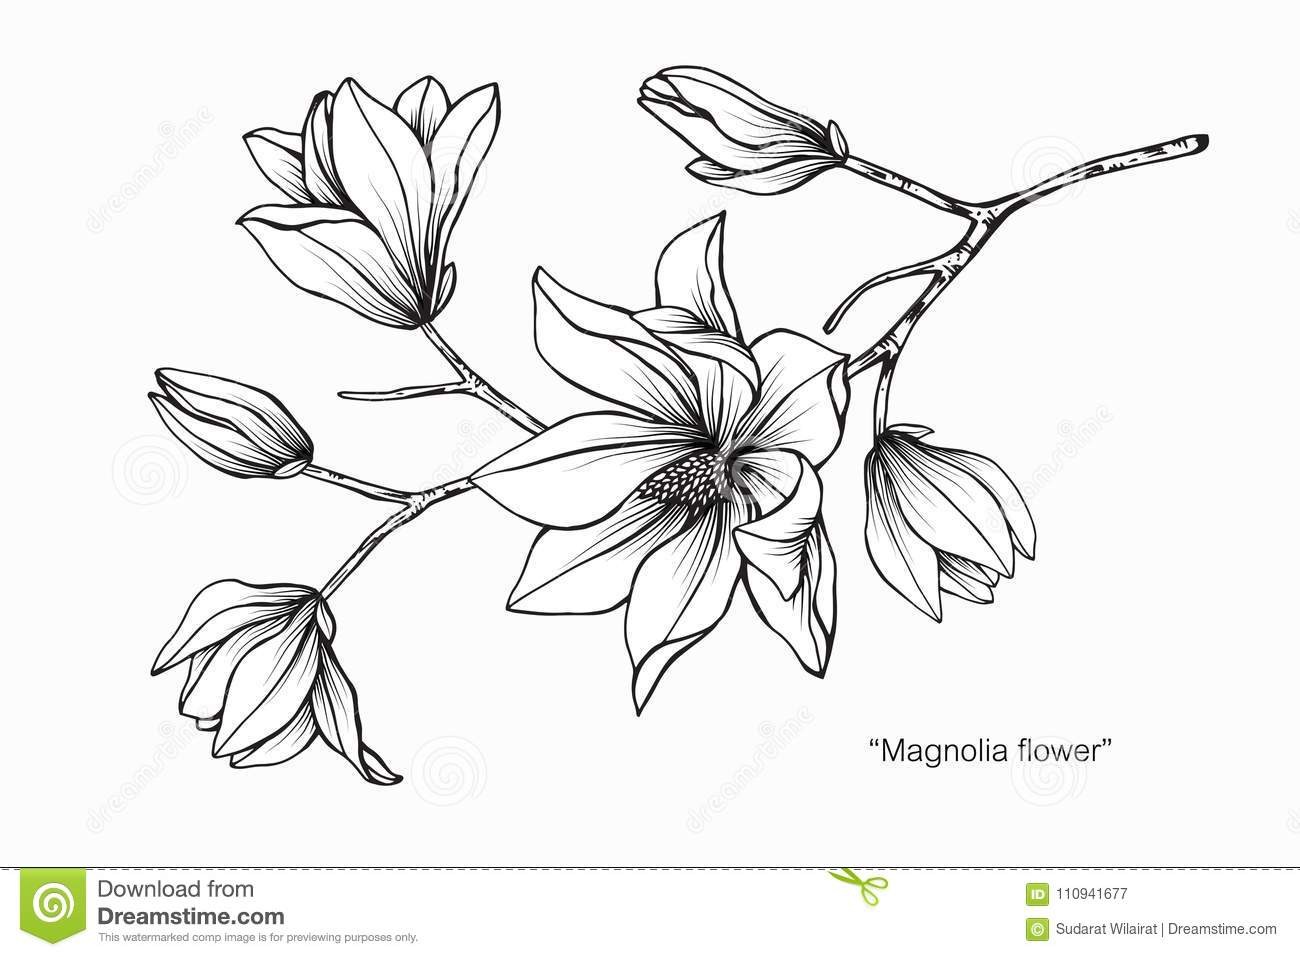 Magnolia flower drawing illustration black and white with line art on white backgrounds